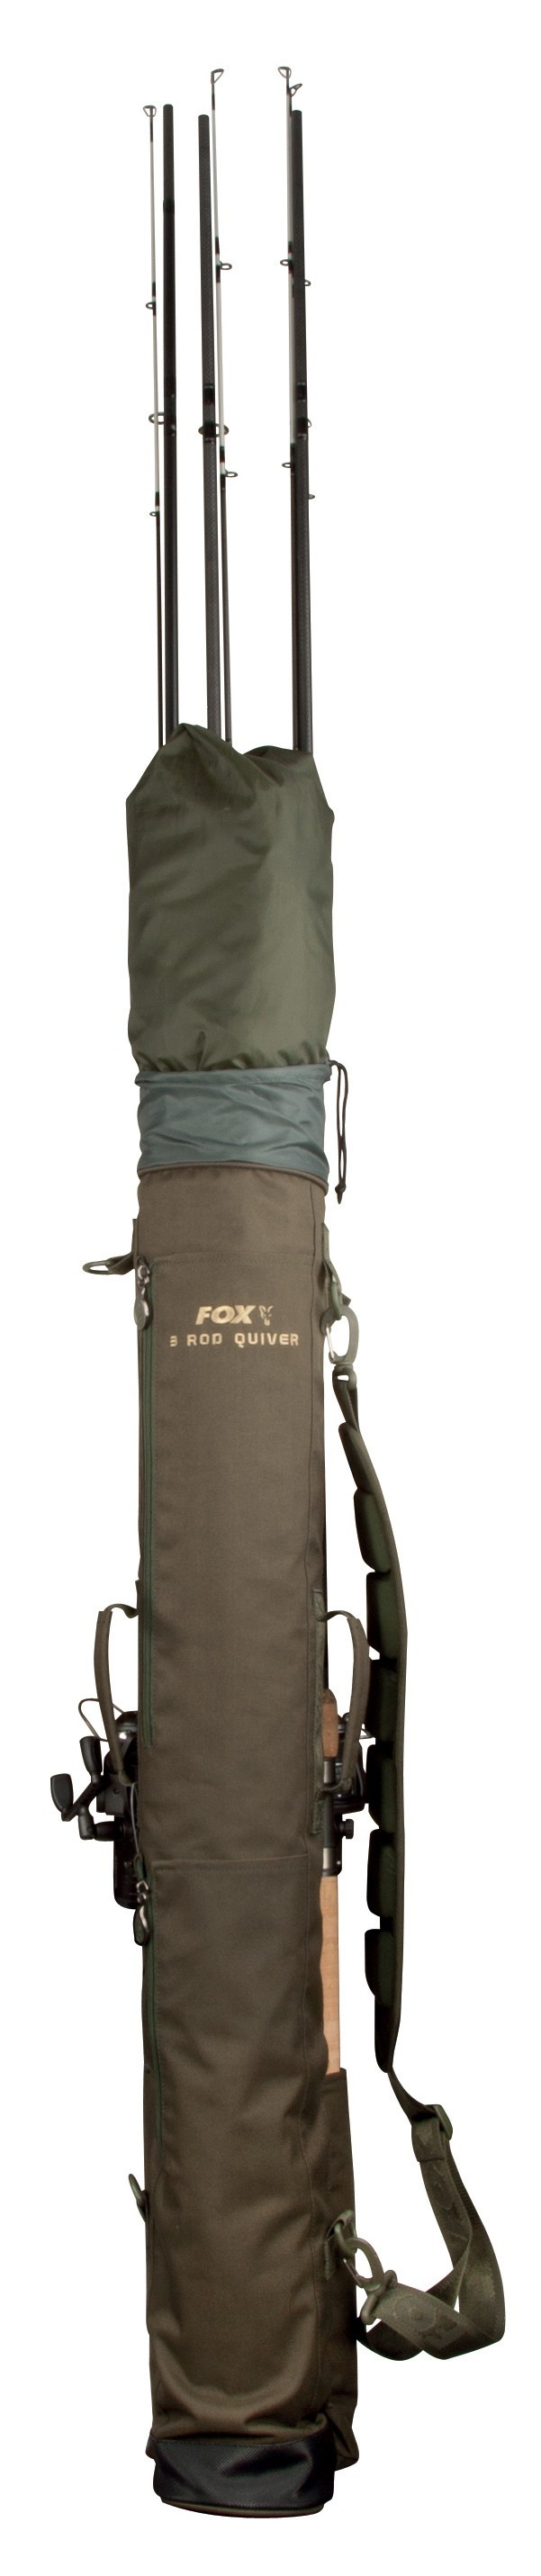 Fox - Specialist 3 Rod Quiver